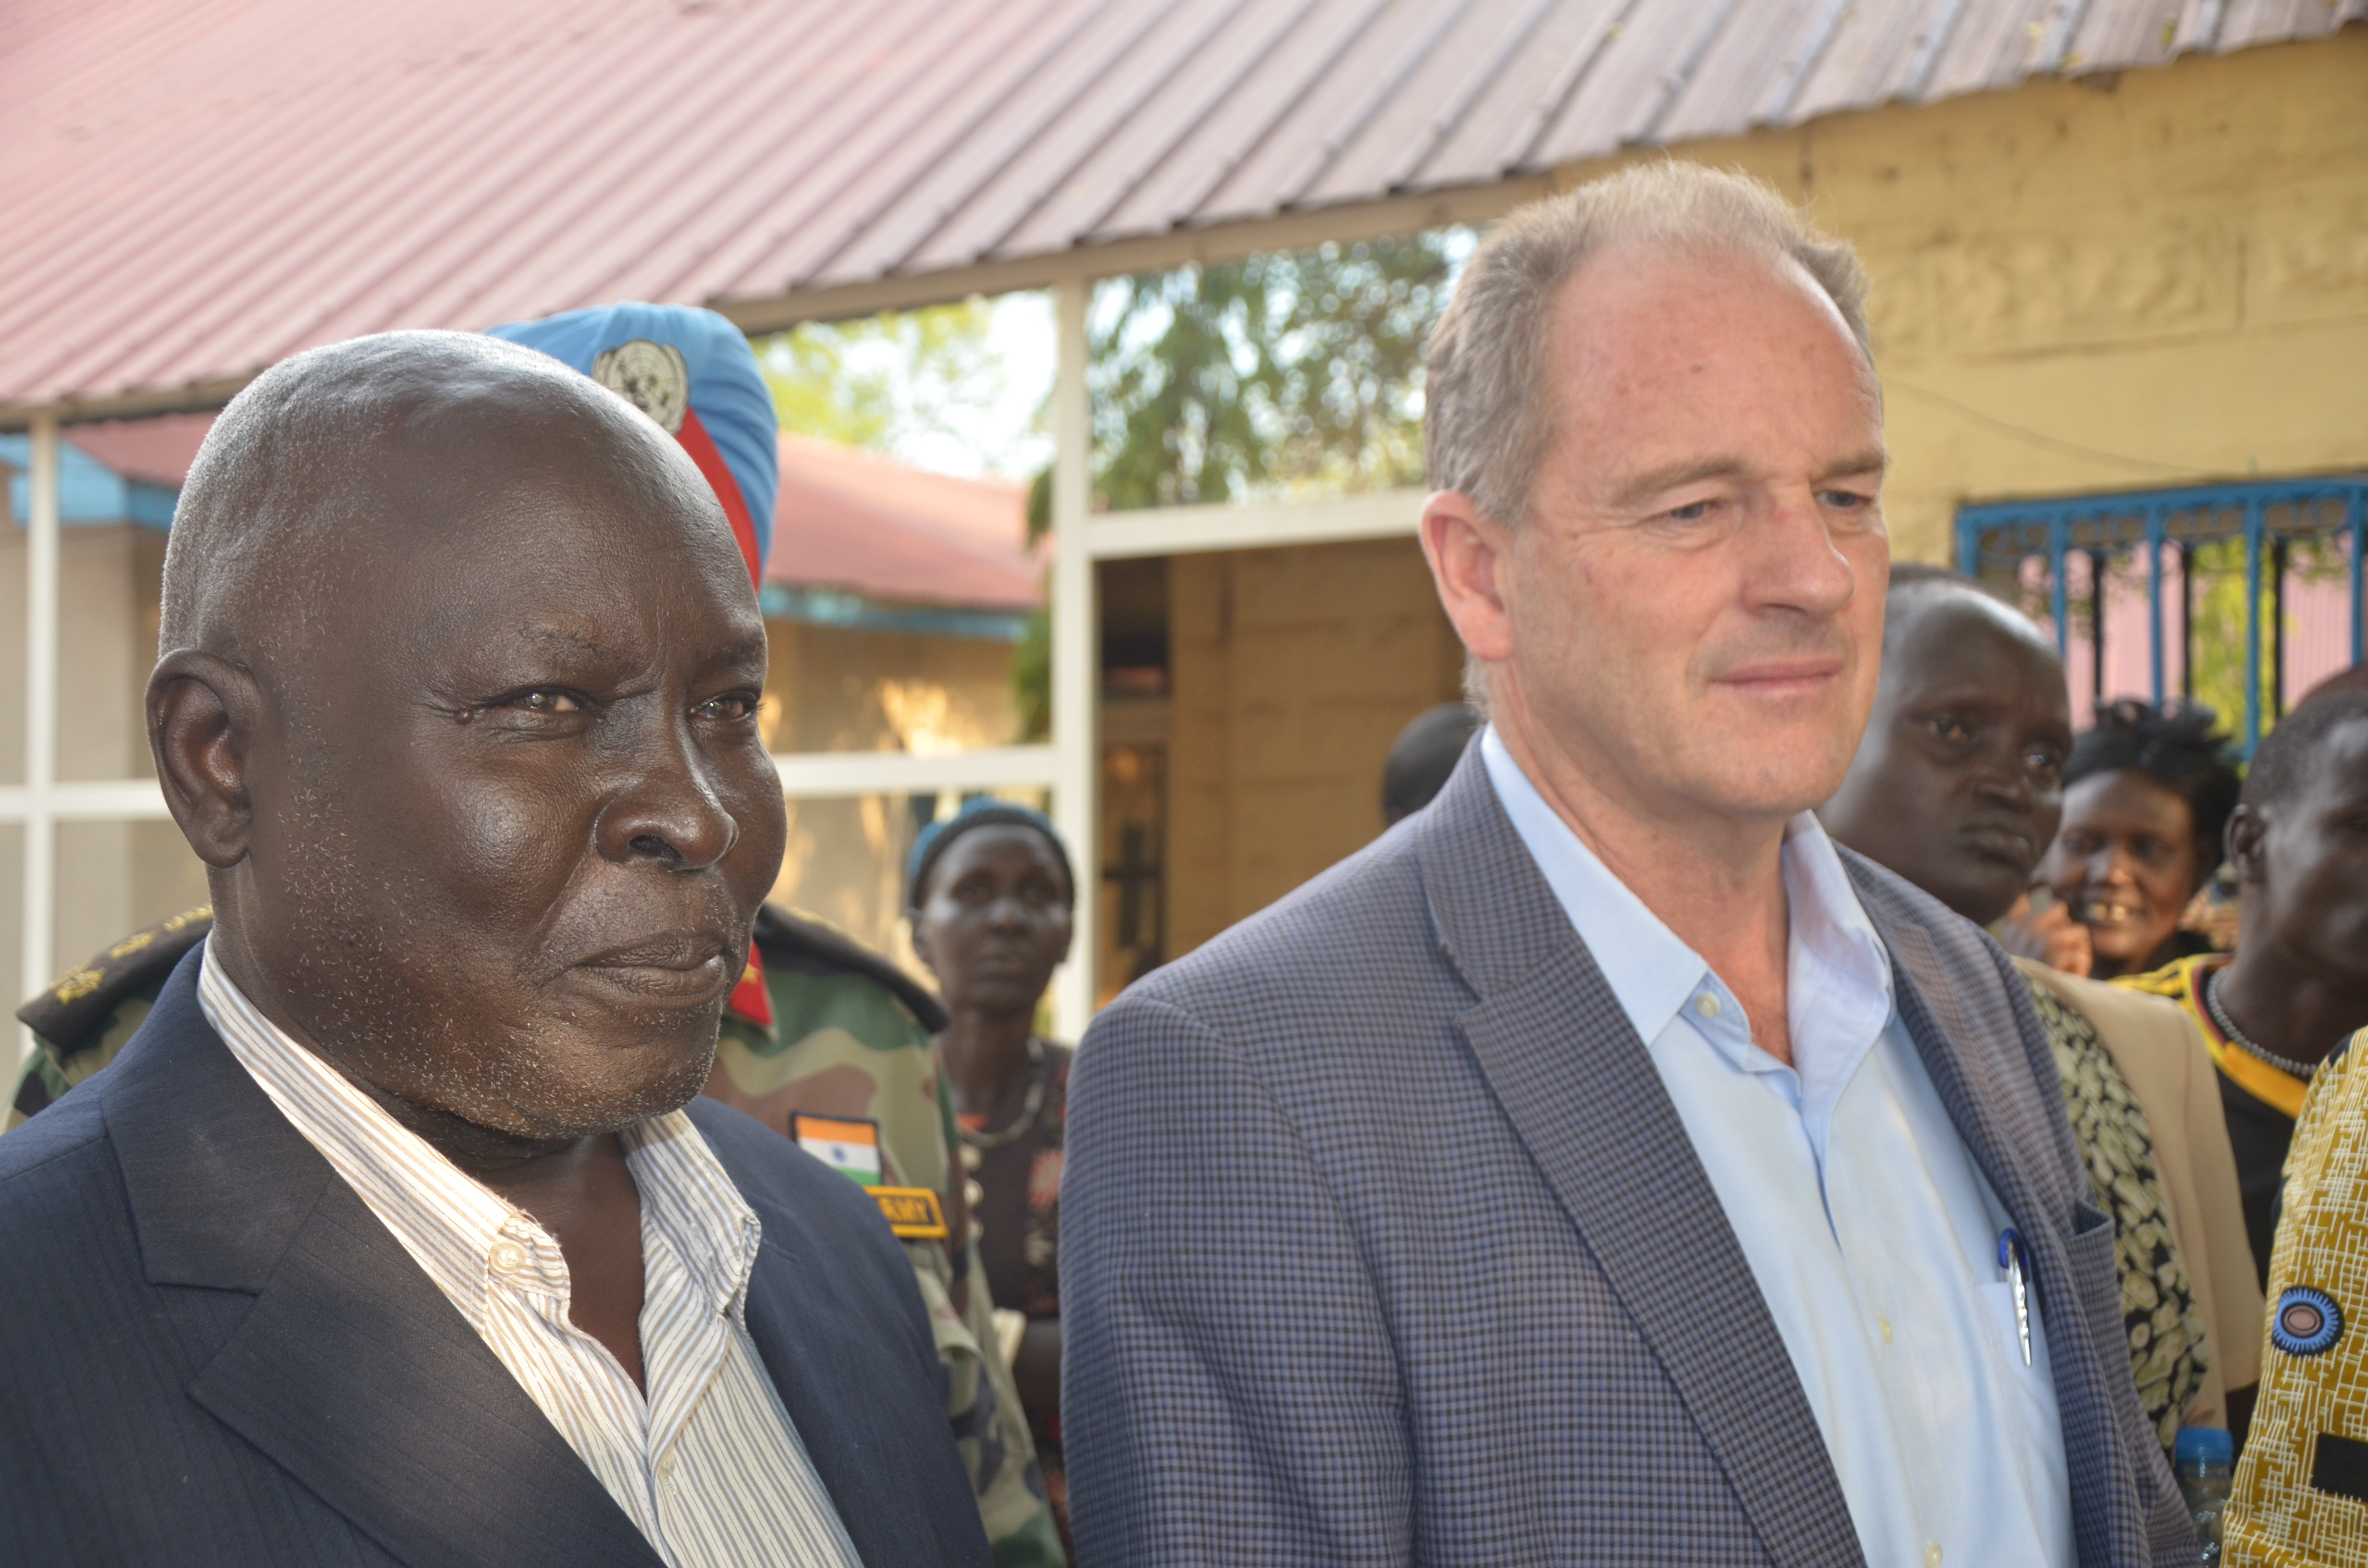 Prof Majok Kelei stands next to UNMISS chief at Council of ministers in Bor picture by Mach Samuel